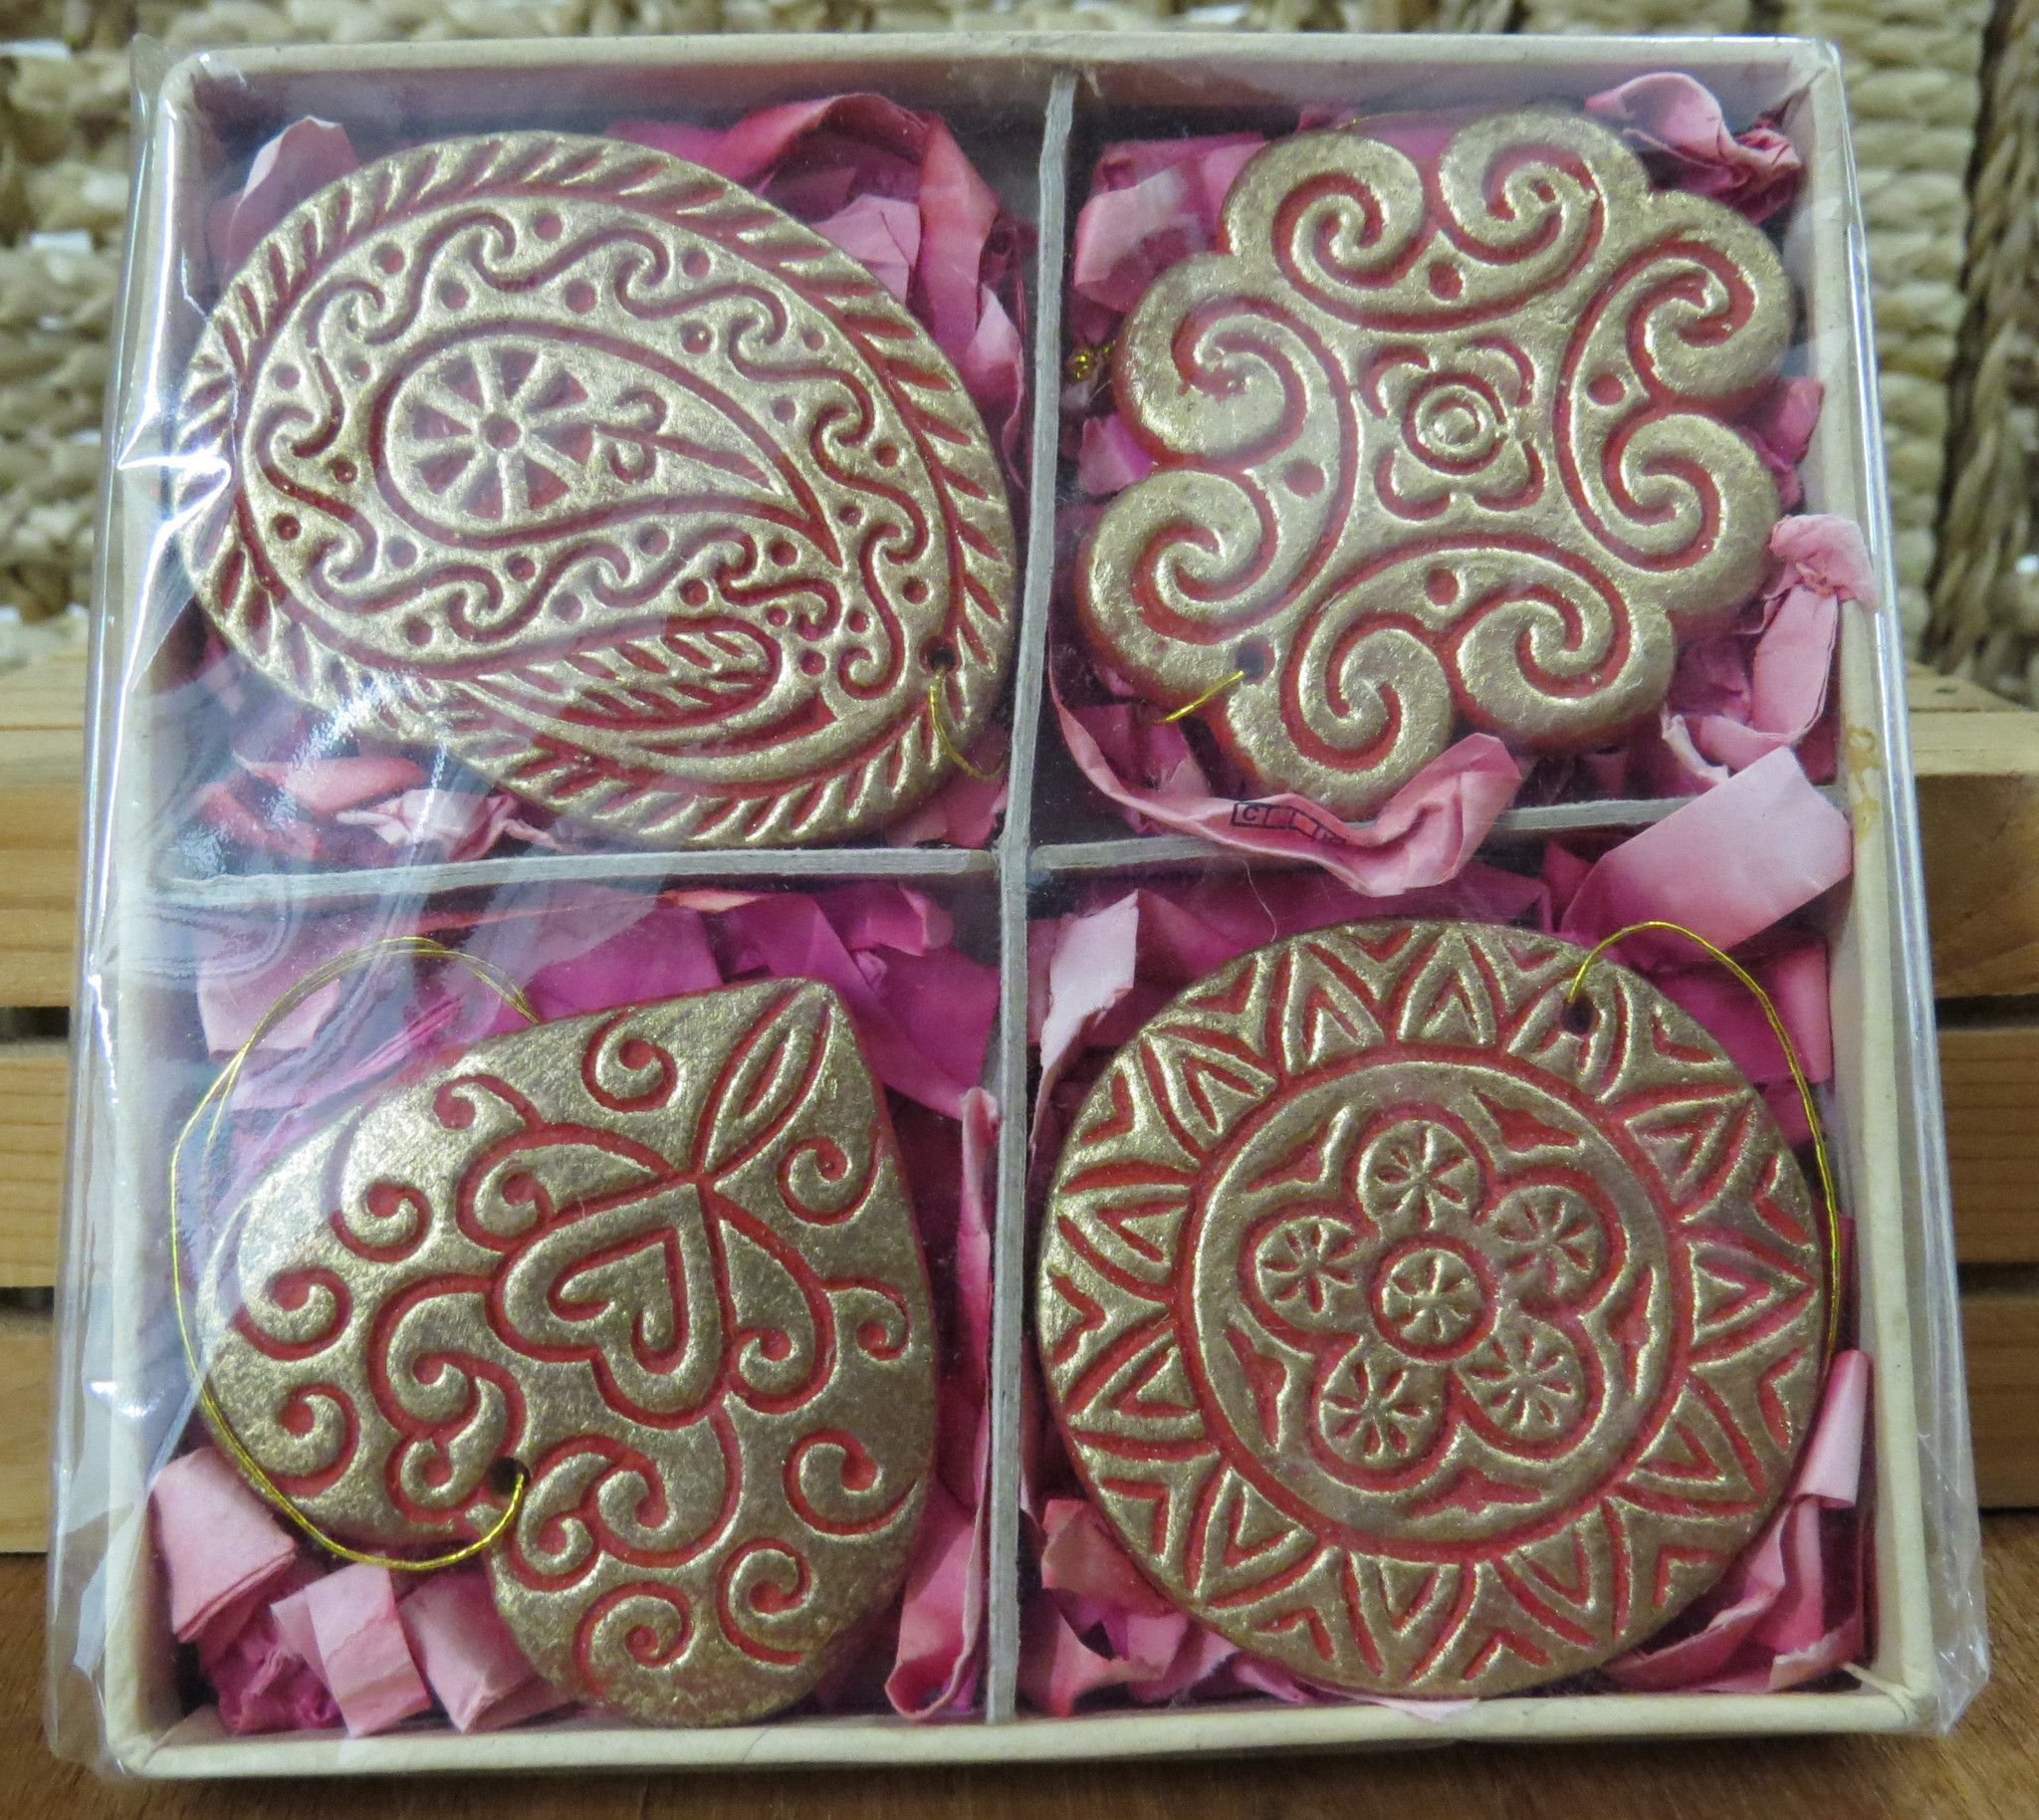 Handcrafted Of Terracotta Ceramic At An Artisans